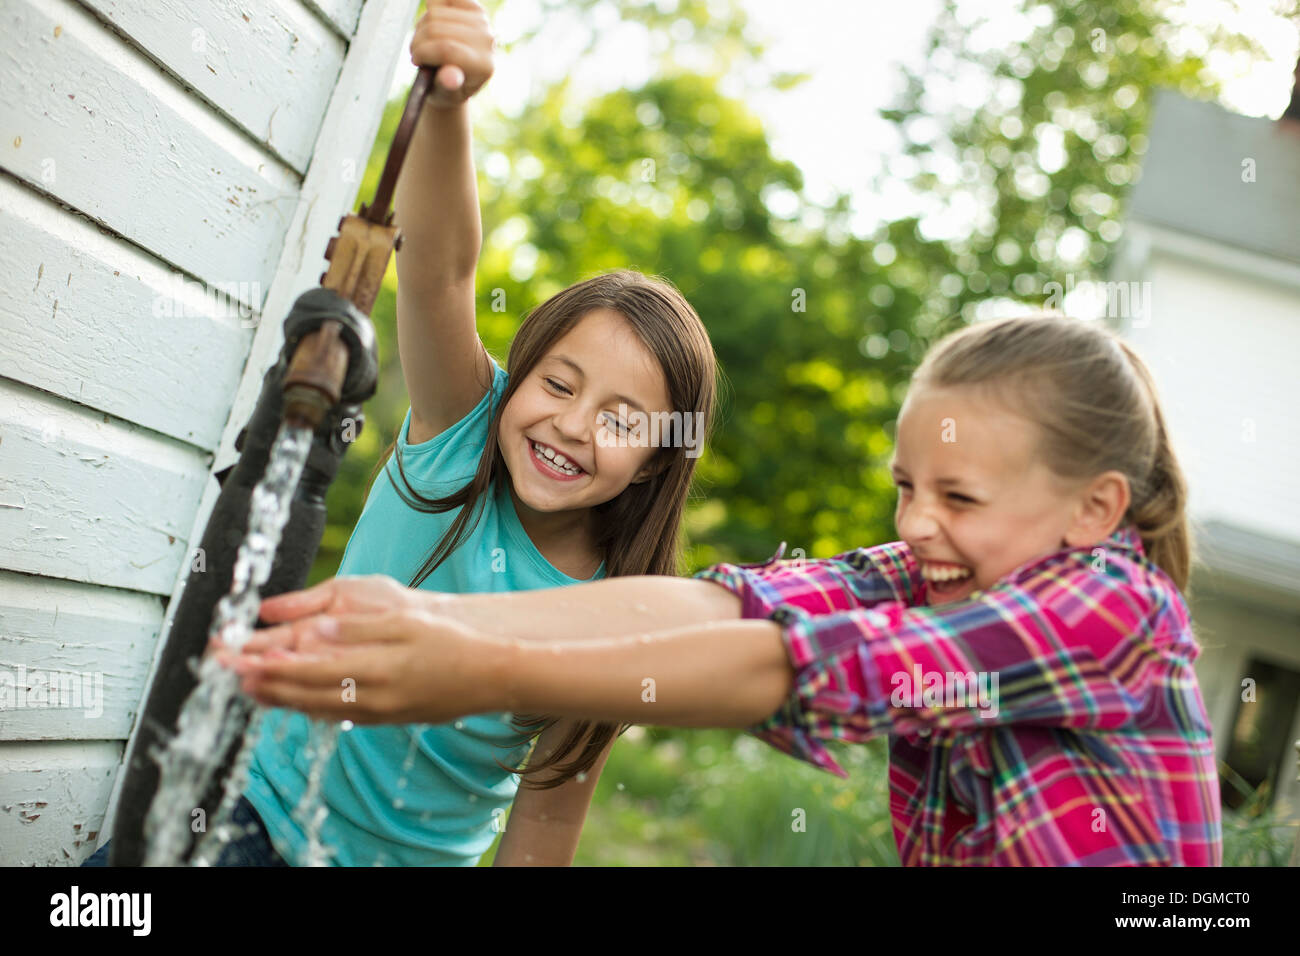 Organic farm. Two girls washing their hands under the flow of water from a pump in the yard. - Stock Image